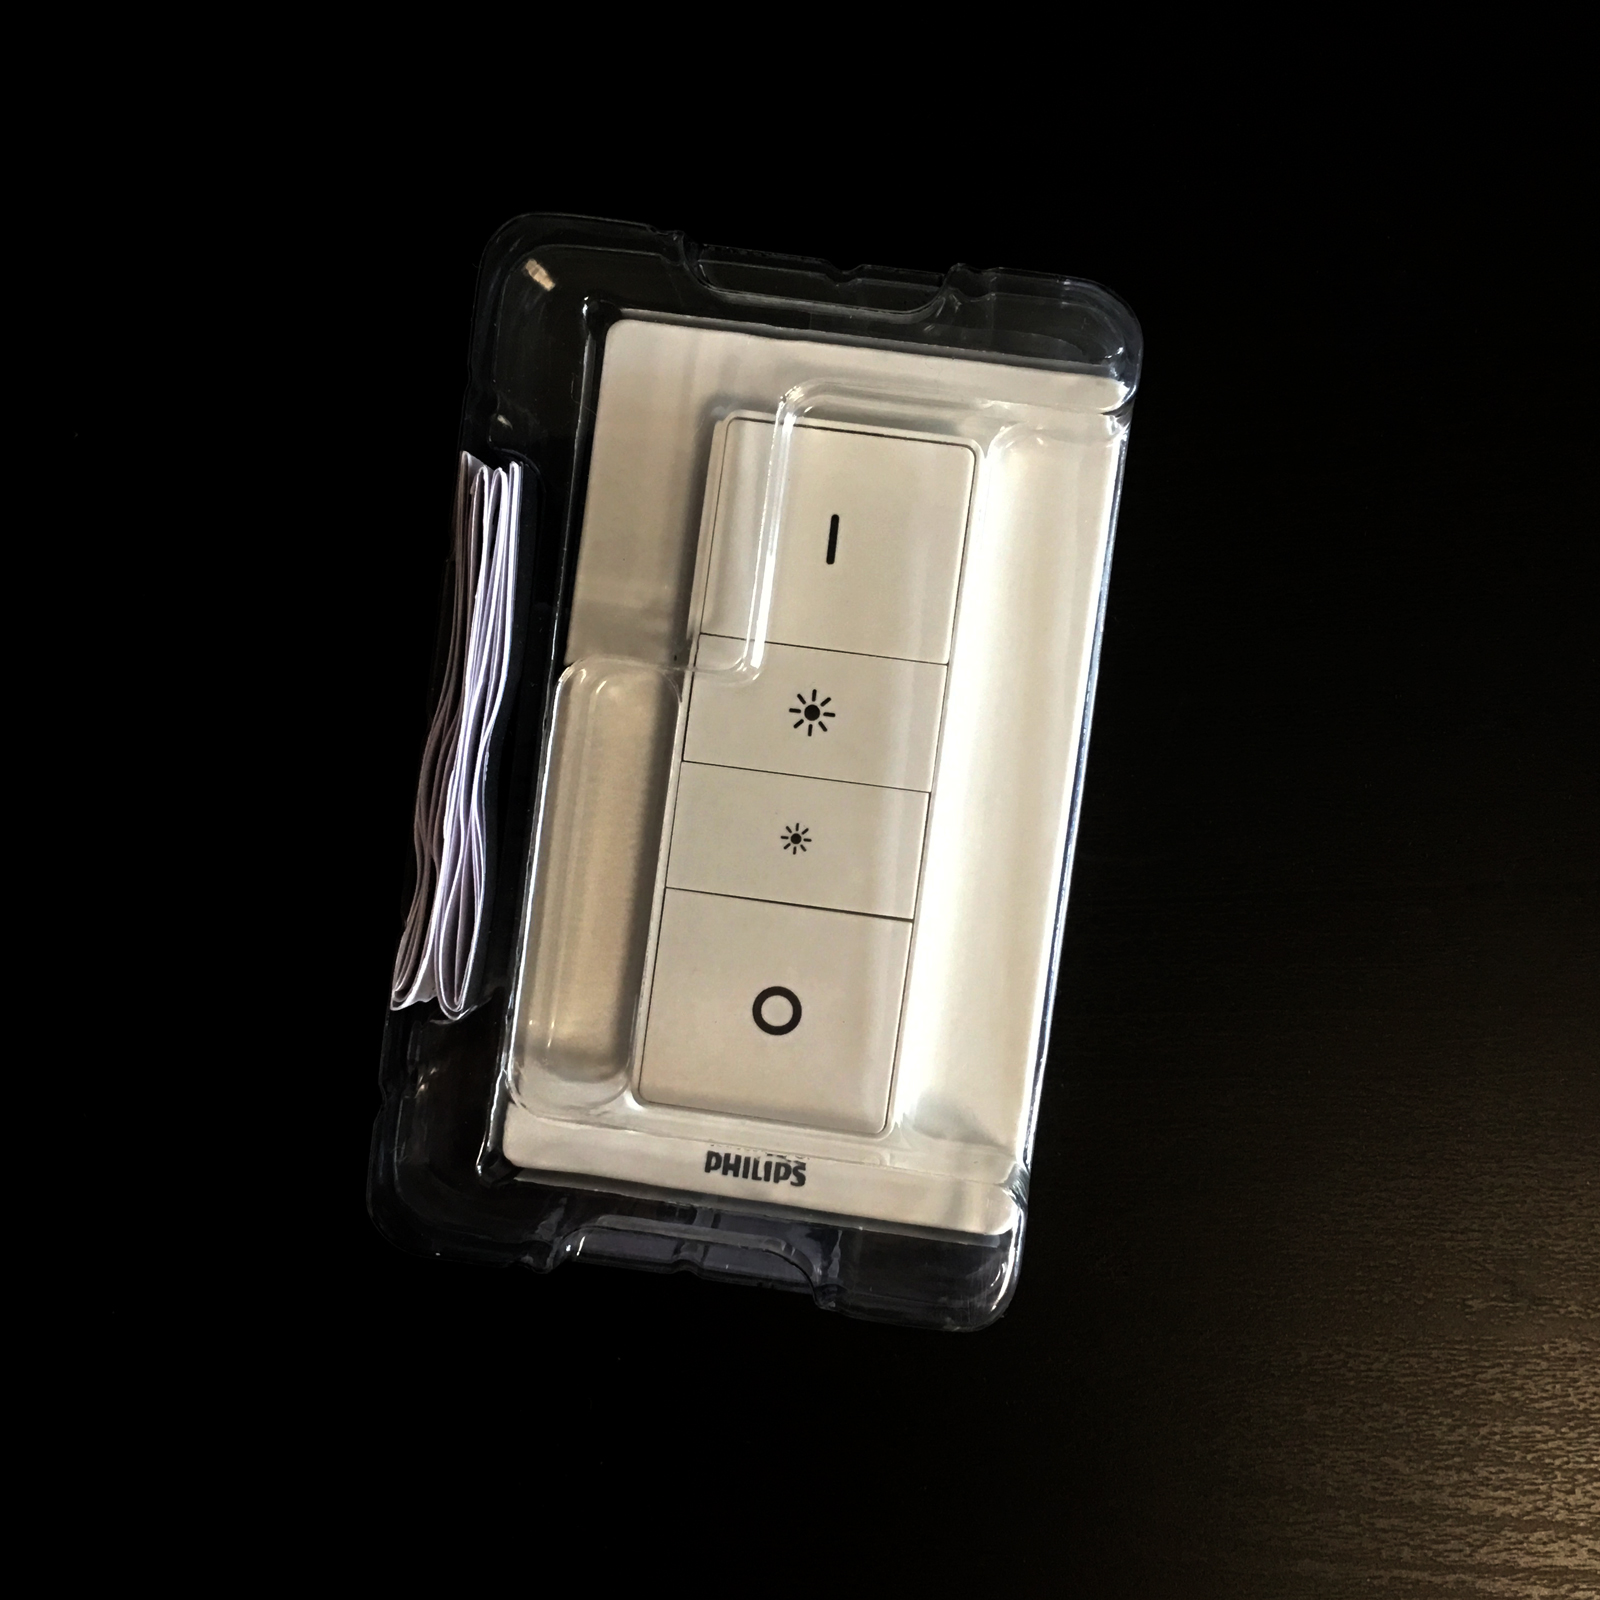 Philips Hue Bridge Homekit Philips Hue Dimmer Switch Review Homekit News And Reviews